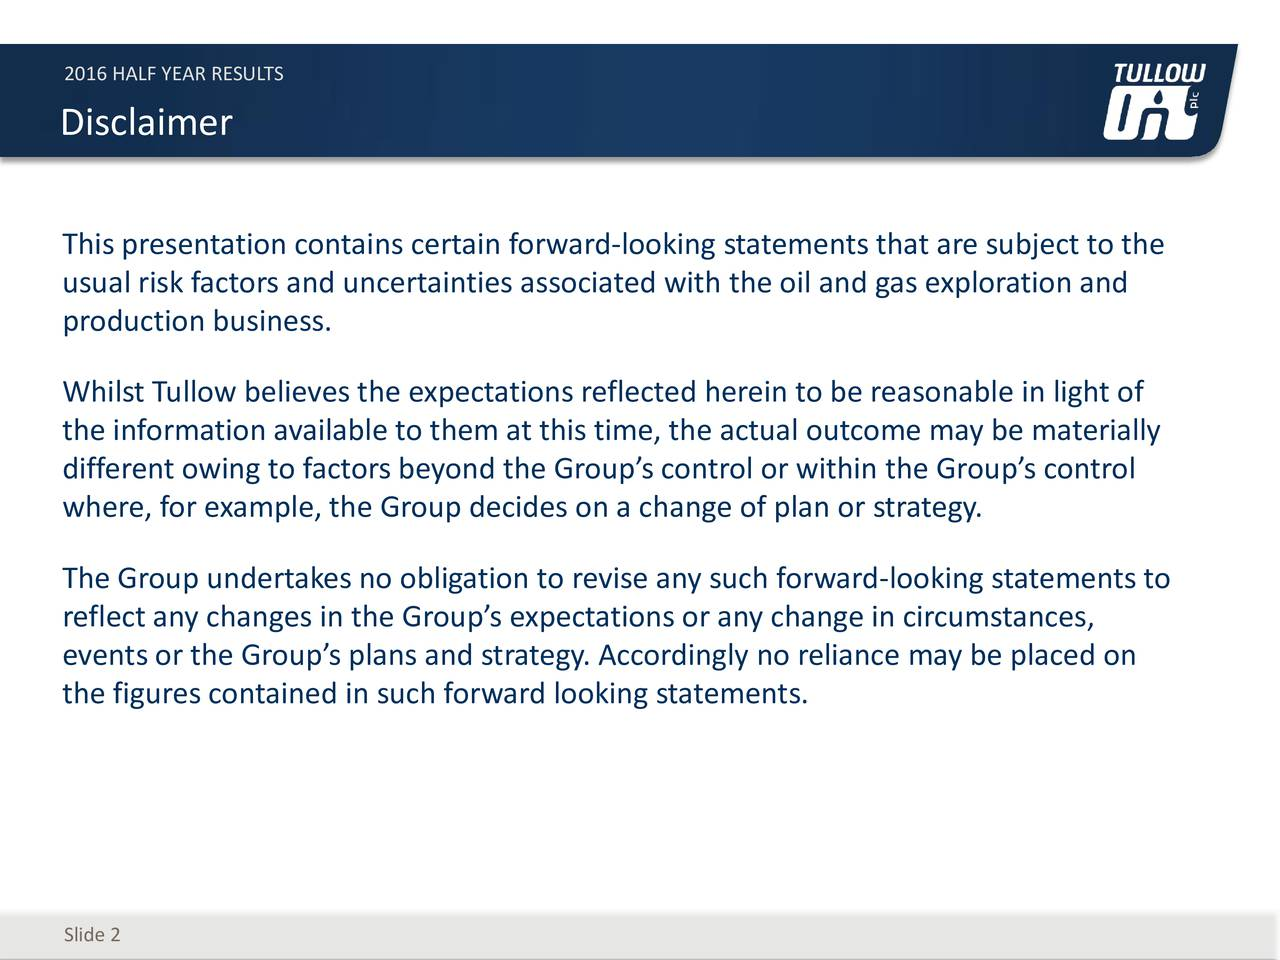 Disclaimer This presentation contains certain forward-looking statements that are subject to the usual risk factors and uncertainties associated with the oil and gas exploration and production business. Whilst Tullow believes the expectations reflected herein to be reasonable in light of the information available to them at this time, the actual outcome may be materially different owing to factors beyond the Groups control or within the Groups control where, for example, the Group decides on a change of plan or strategy. The Group undertakes no obligation to revise any such forward-looking statements to reflect any changes in the Groups expectations or any change in circumstances, events or the Groups plans and strategy. Accordingly no reliance may be placed on the figures contained in such forward looking statements. Slide 2